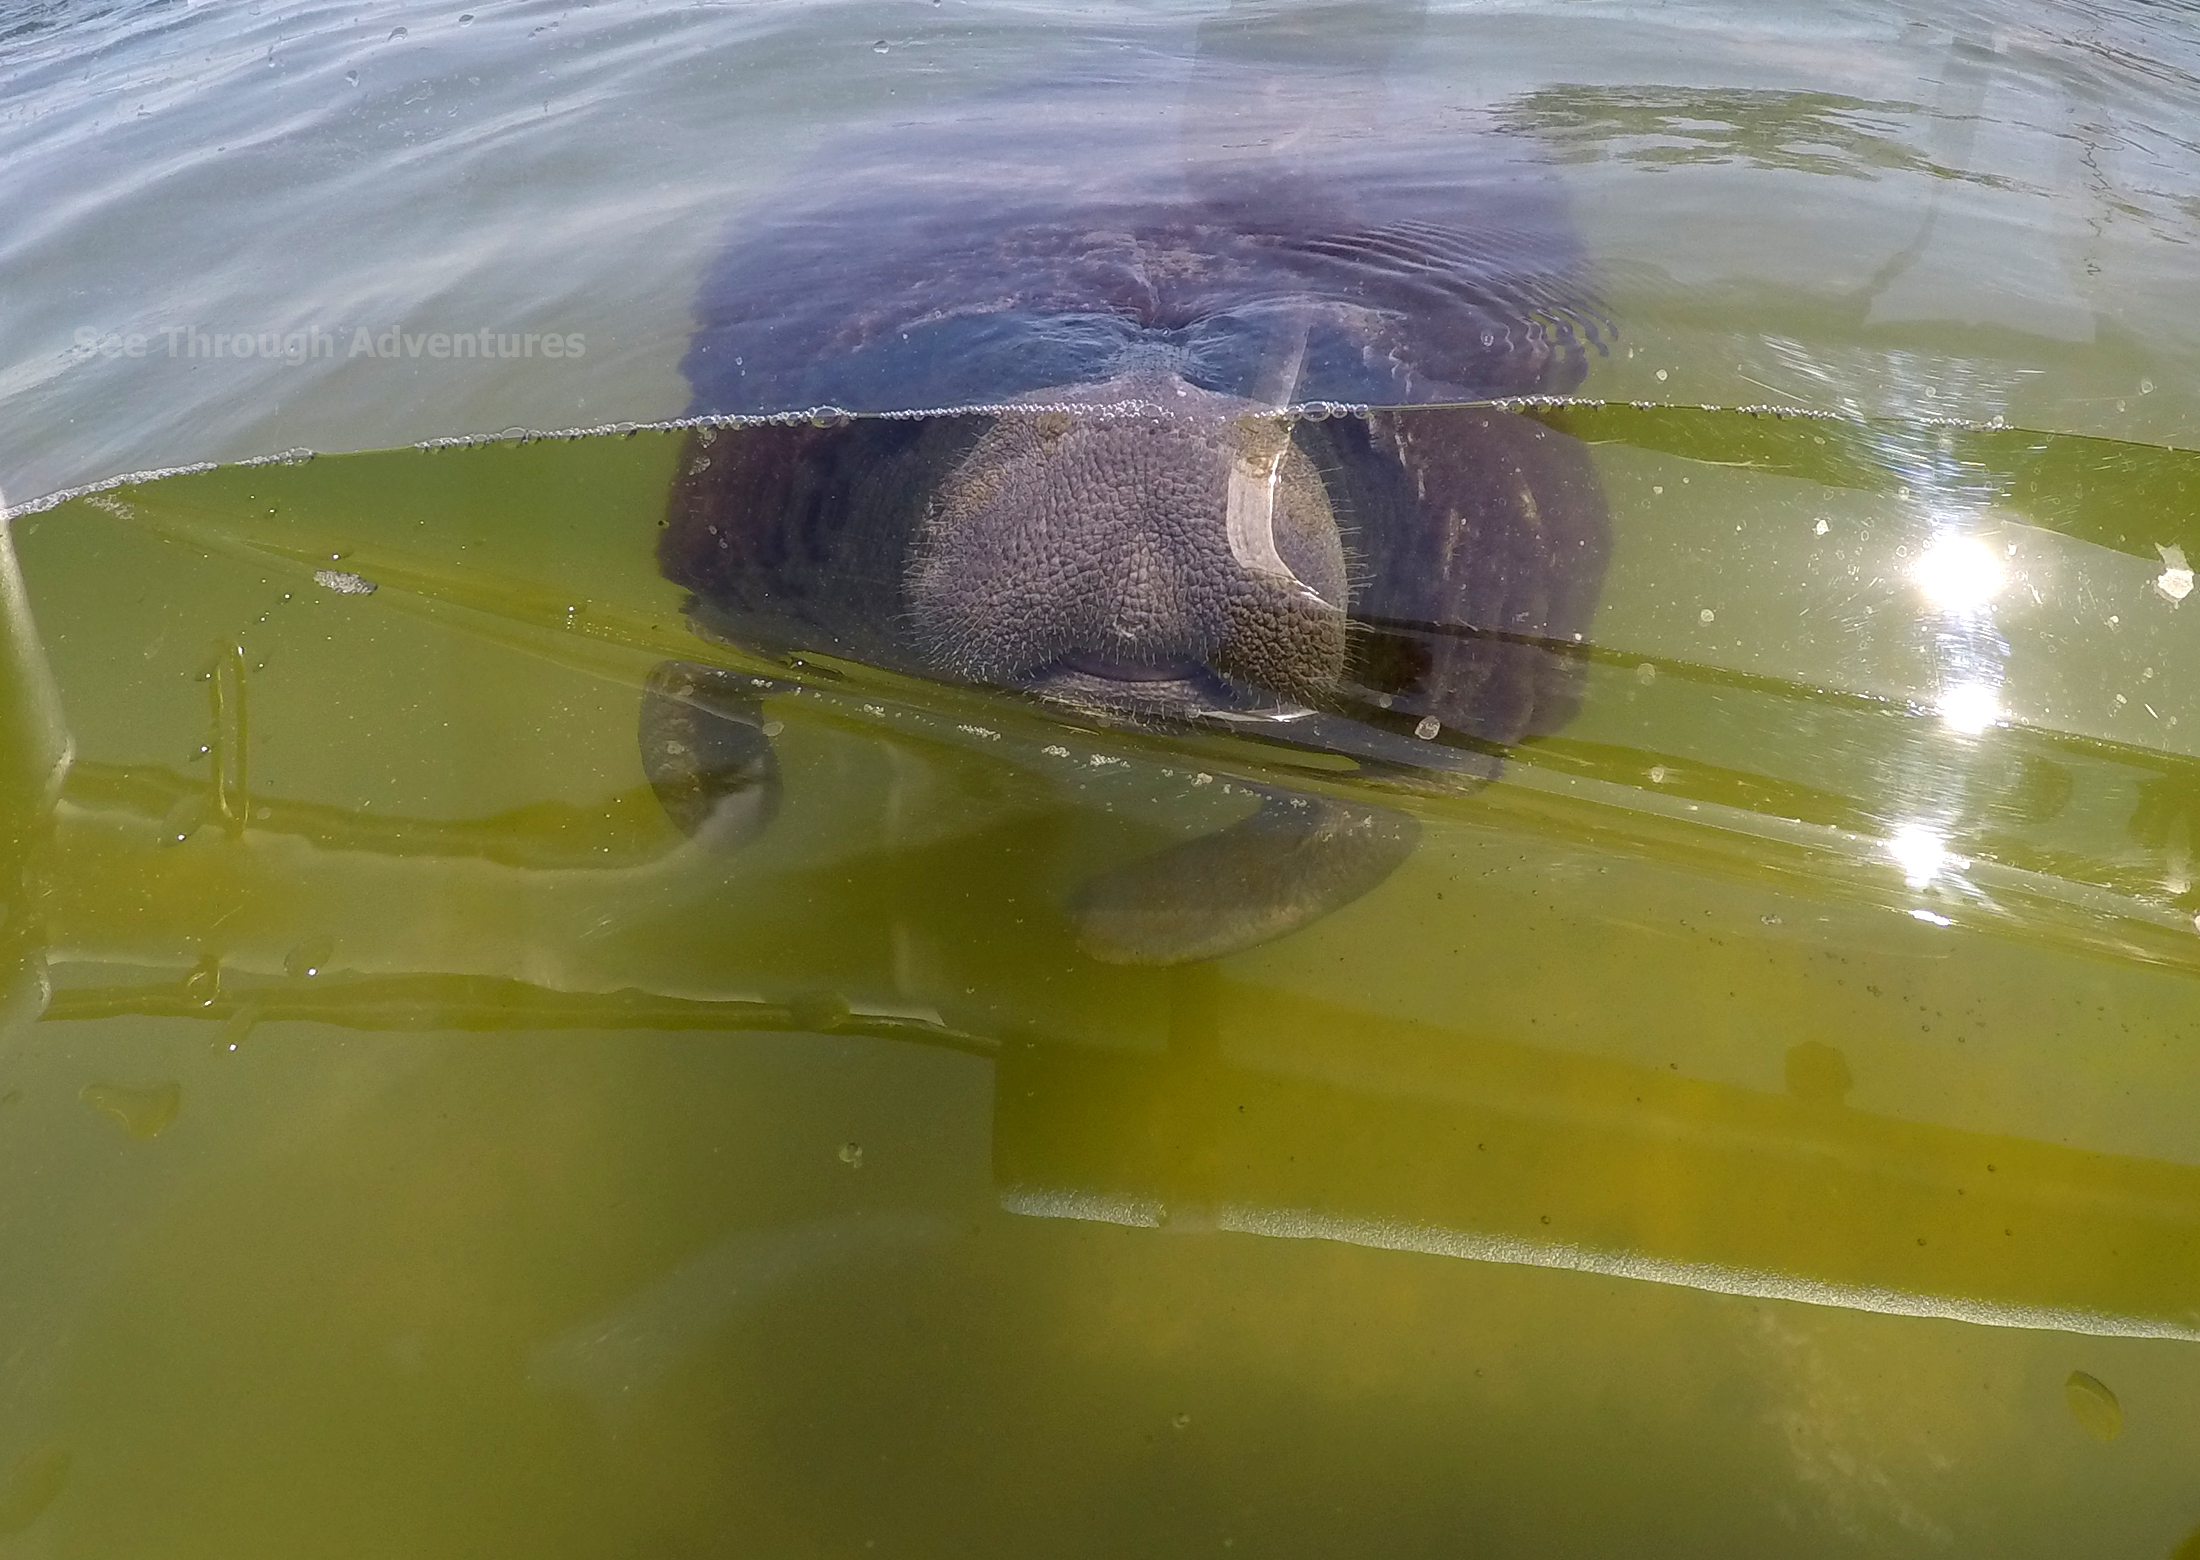 Manatee checking out the clear canoe